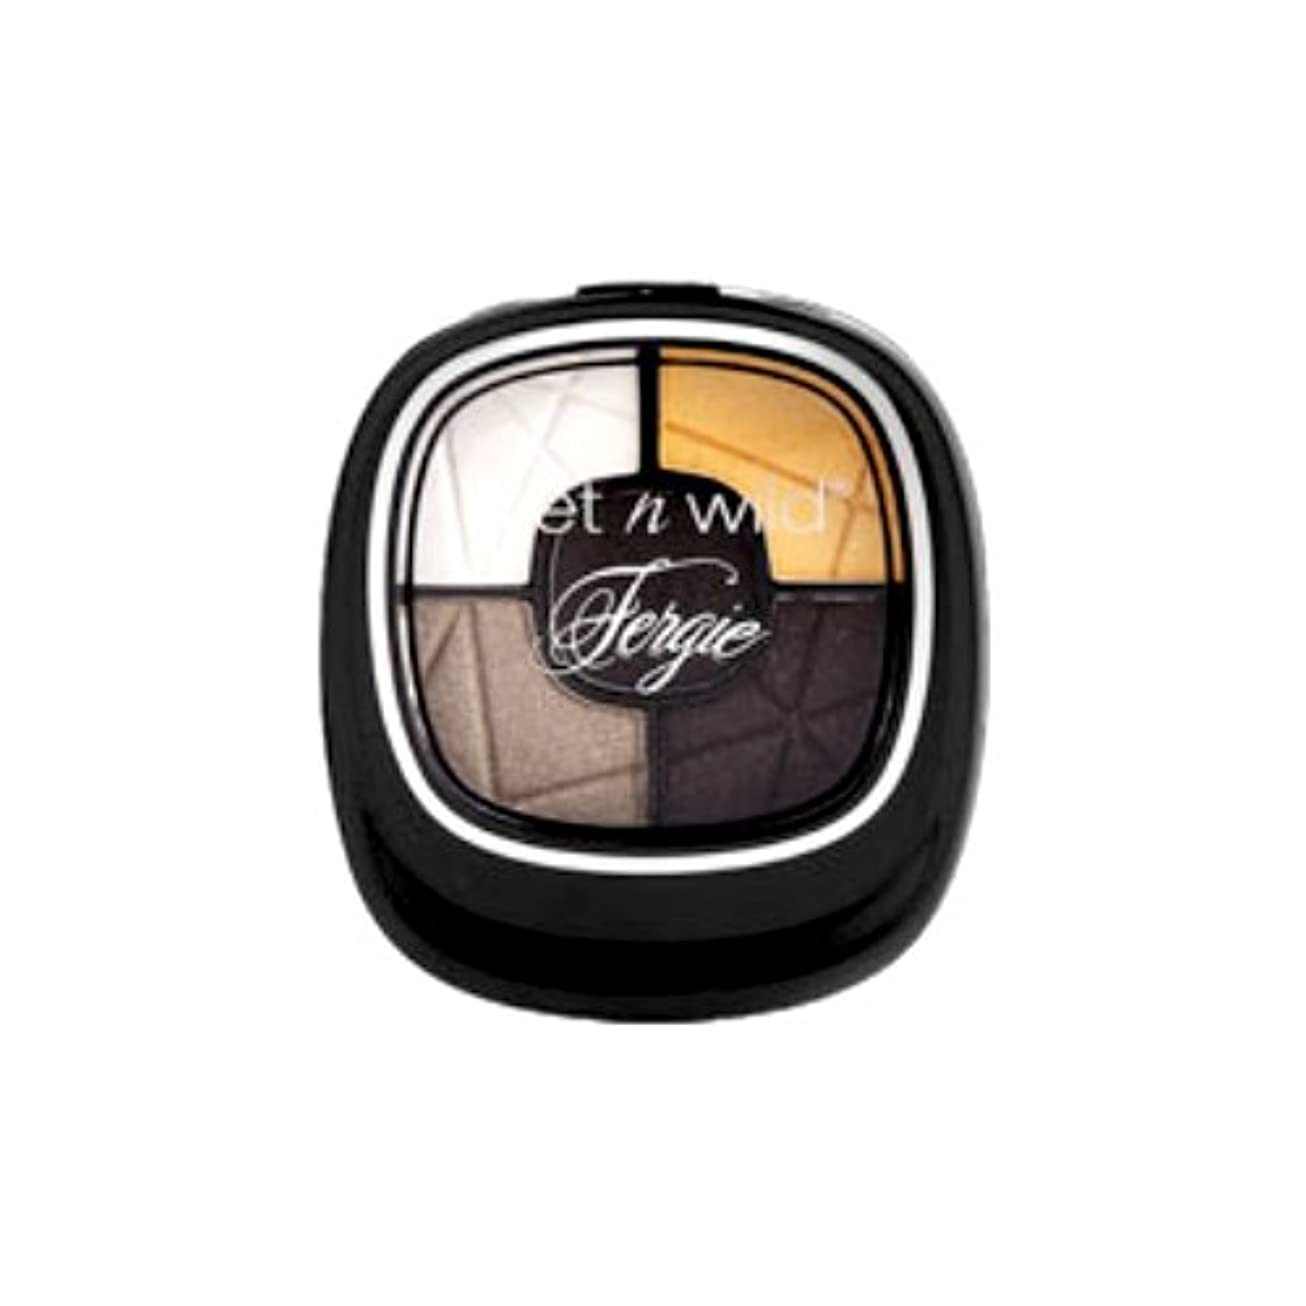 複製援助ねじれWet N Wild FERGIE Photo Op Eyeshadow - Metropolitan Lights (並行輸入品)